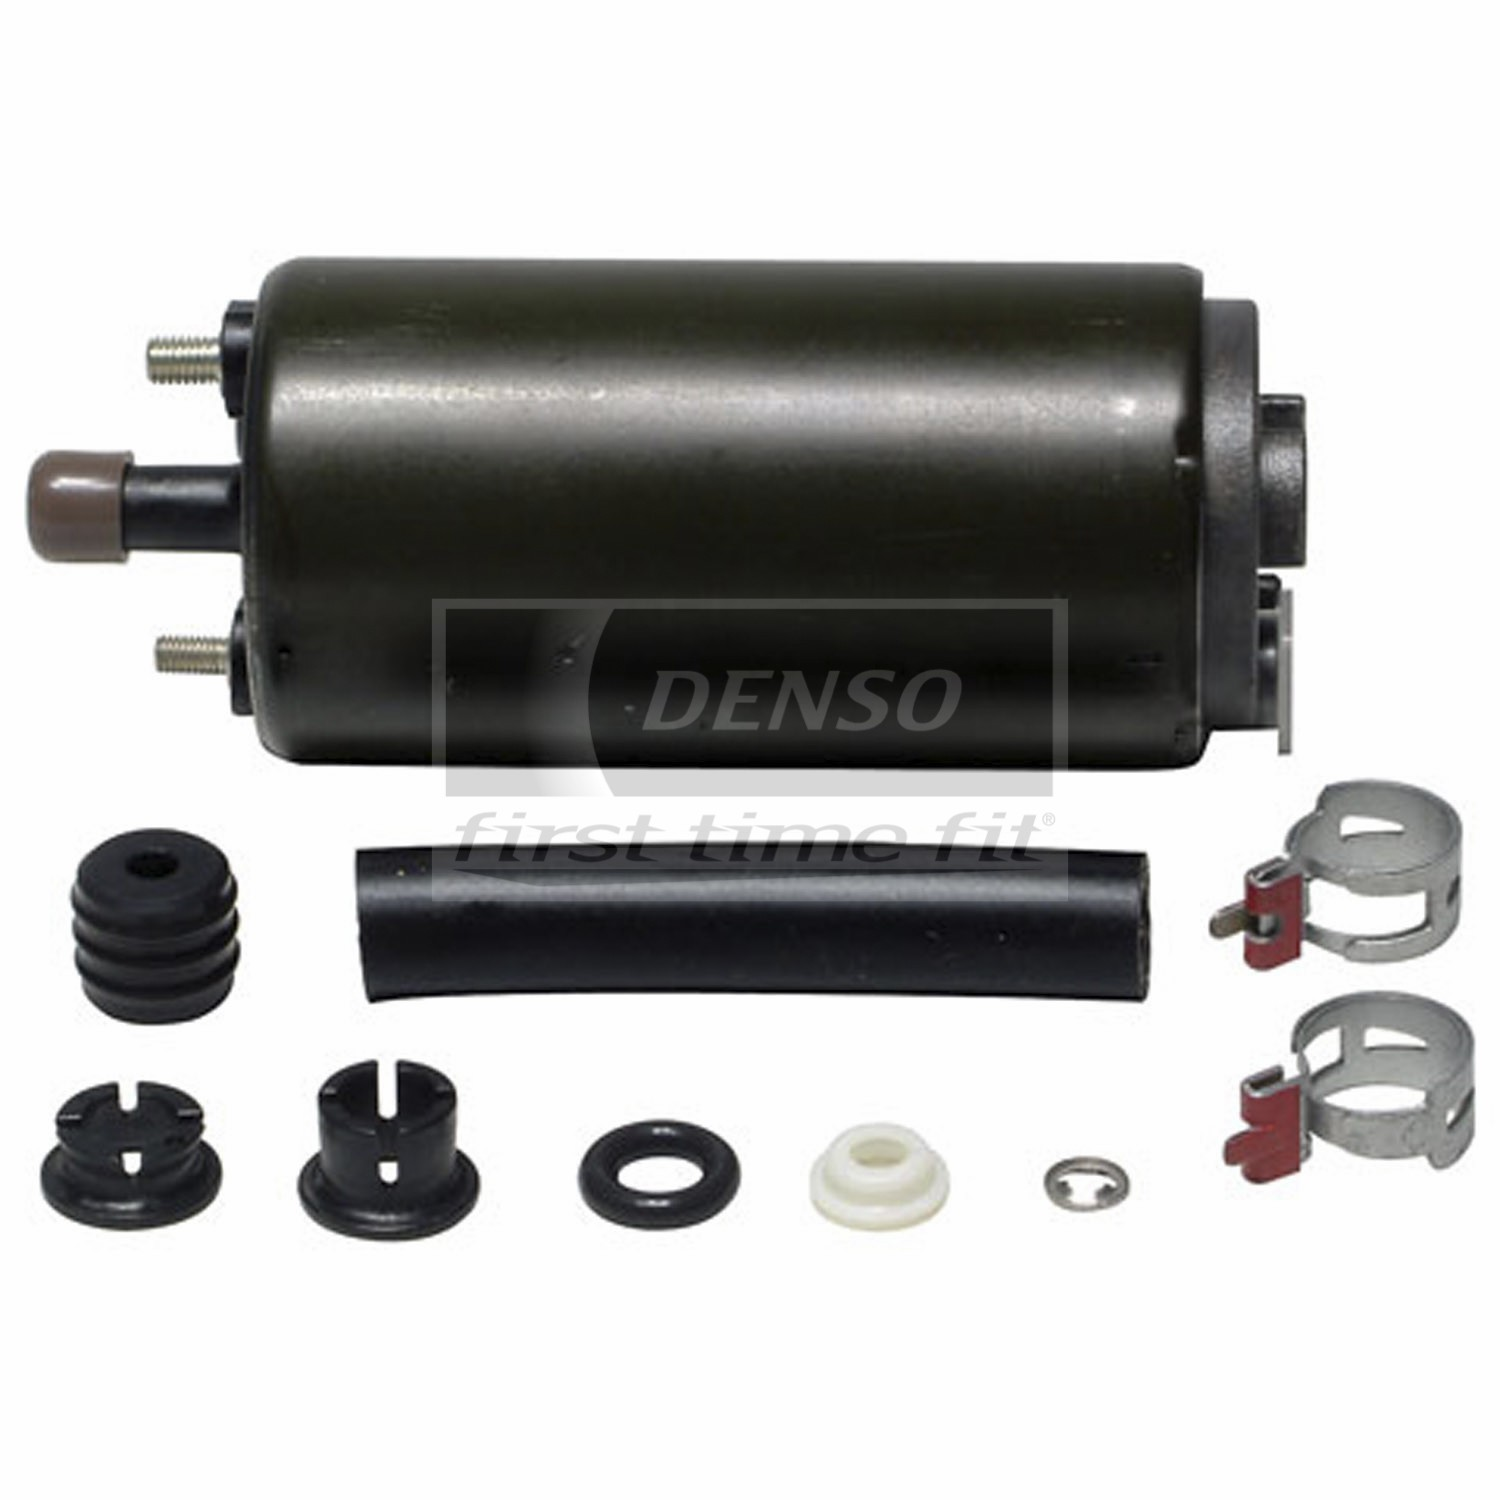 Denso 9510014 Electric Fuel Pump Fits 1993-1998 Toyota Supra